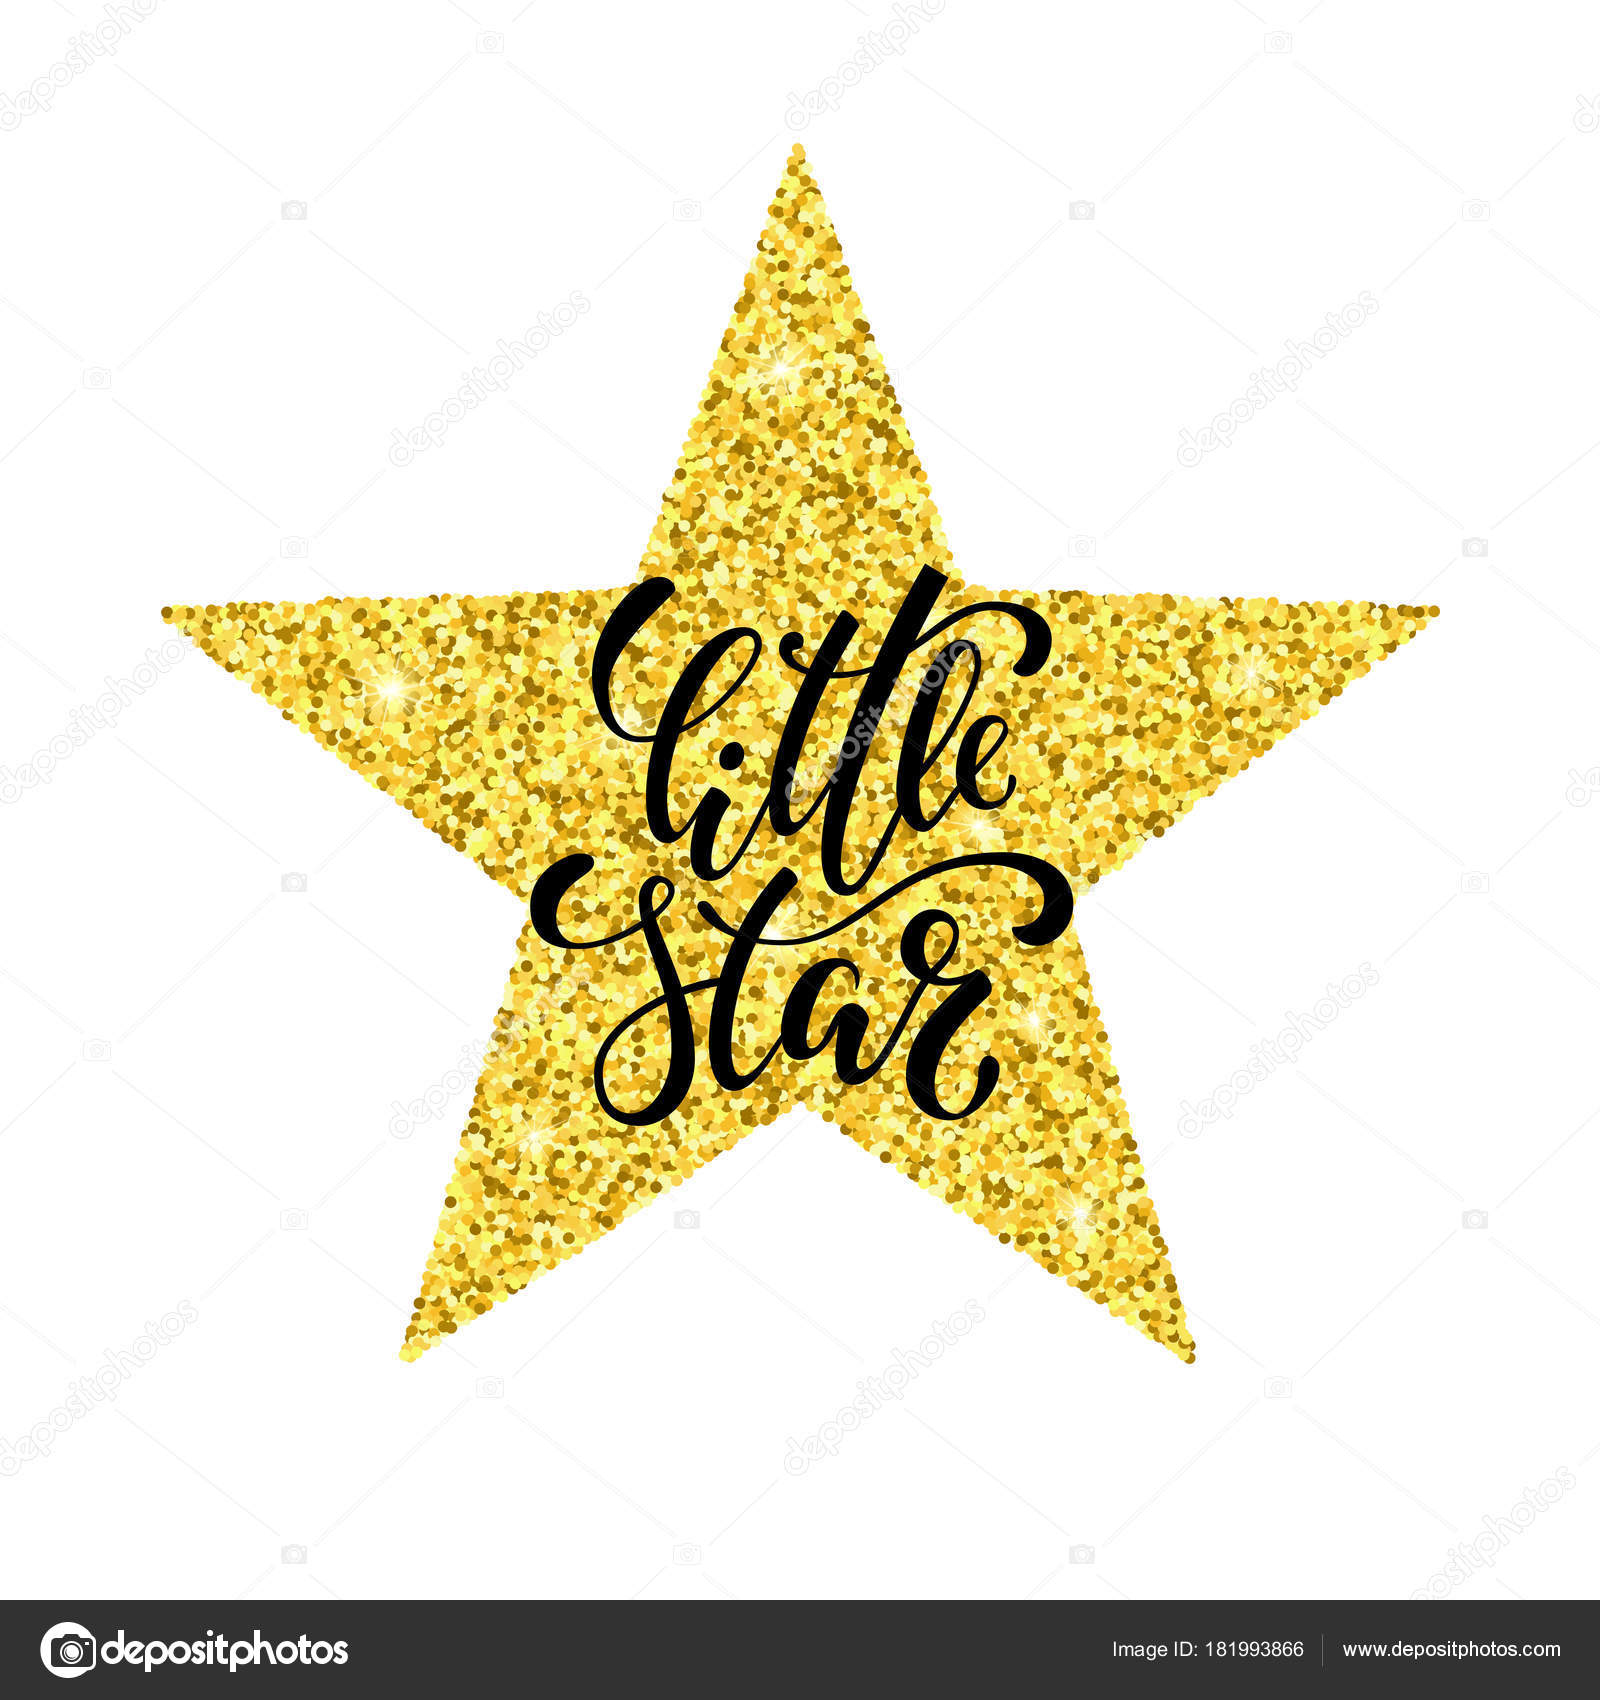 Little star hand drawn creative calligraphy and brush pen little star hand drawn creative calligraphy and brush pen lettering on gold glitter star isolated on white background design holiday greeting cards kristyandbryce Images